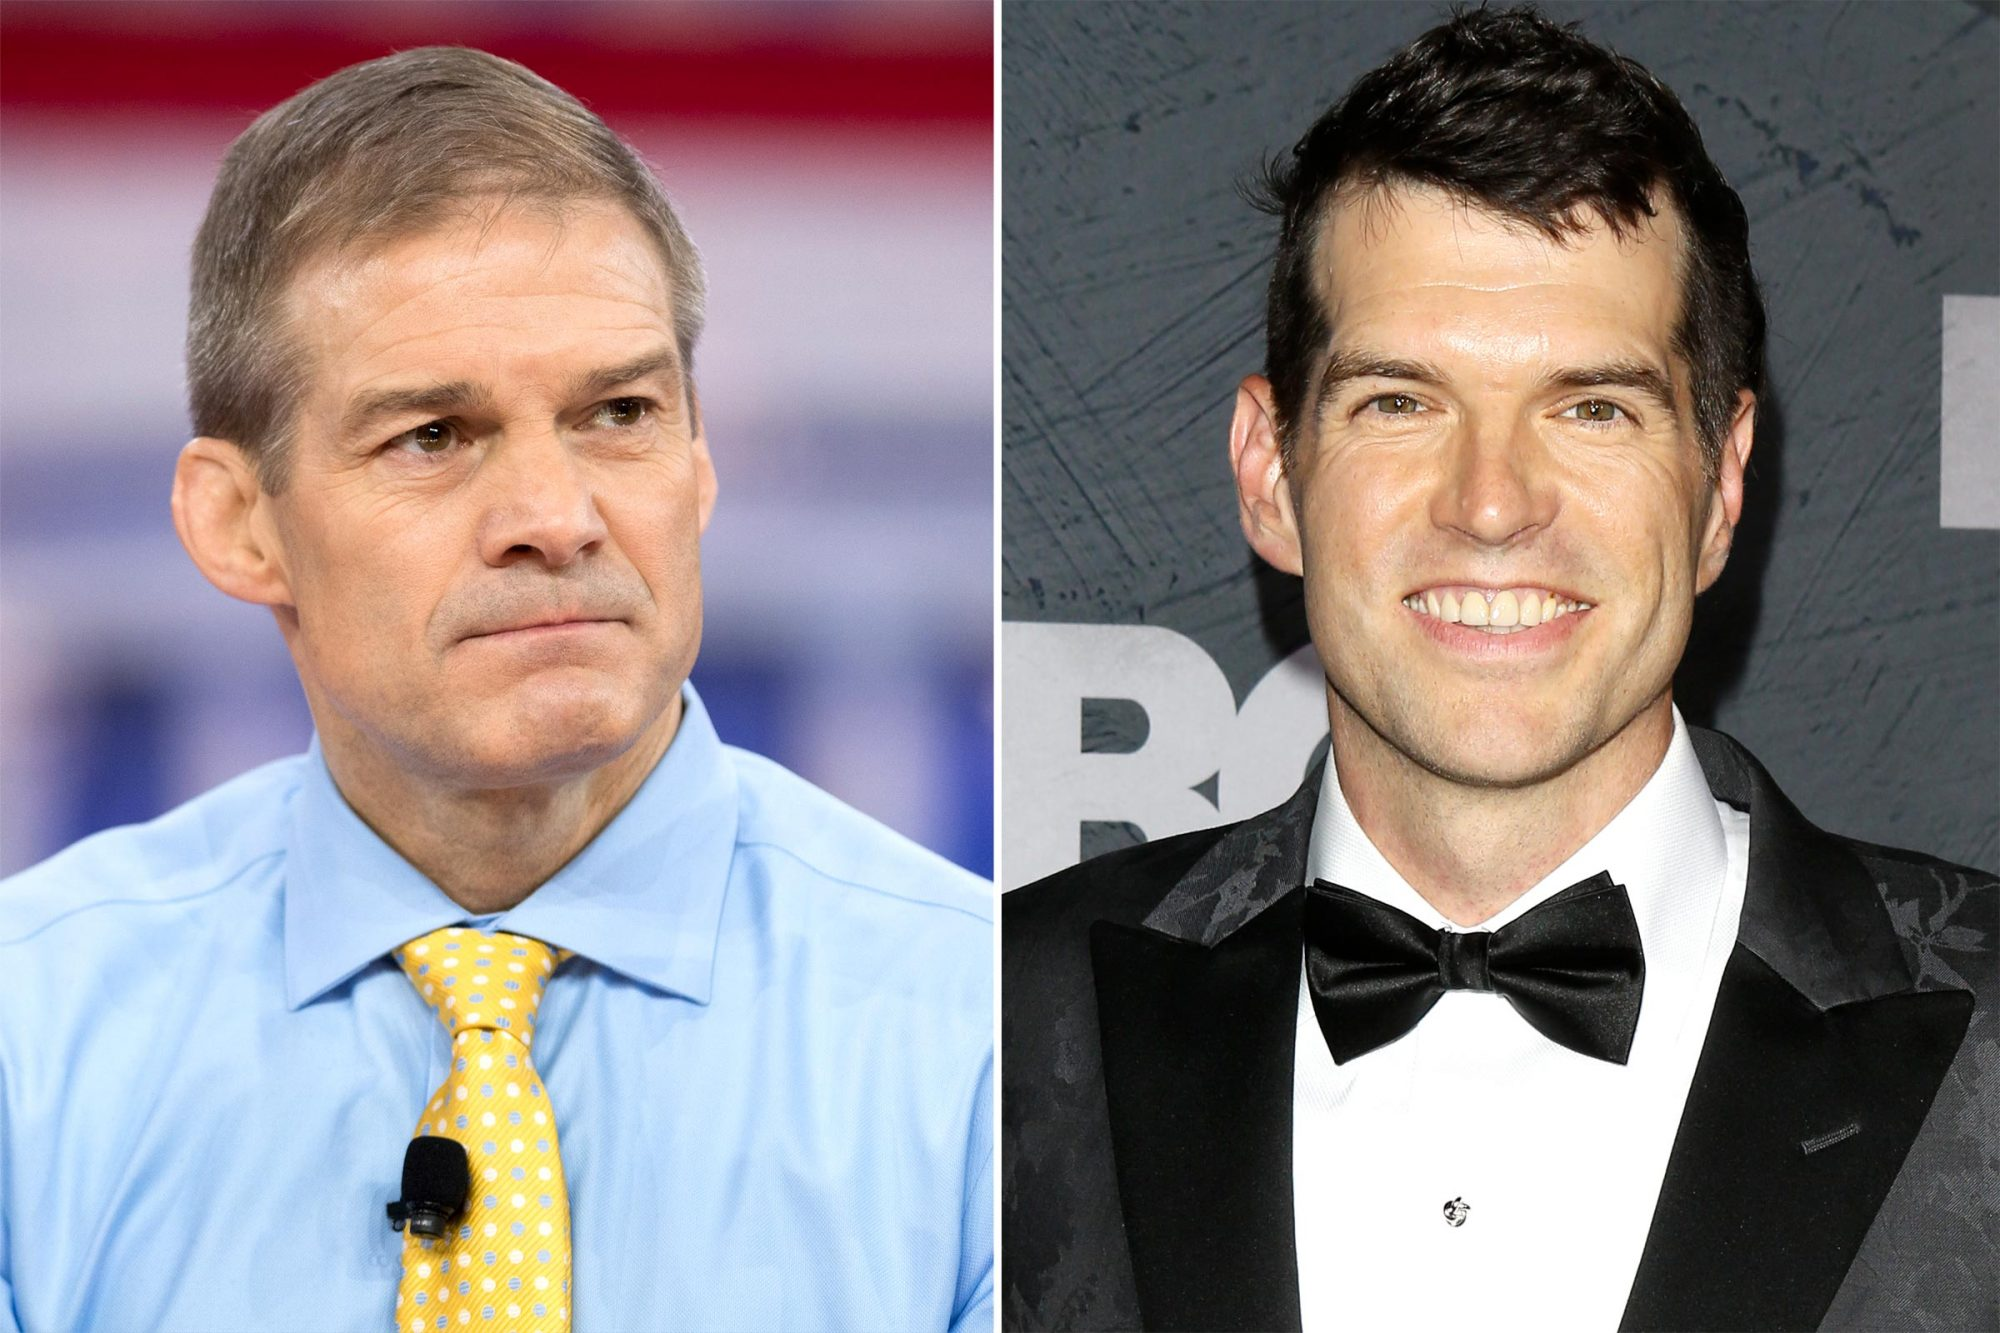 U.S. Rep. Jim Jordan, played by Timothy Simons